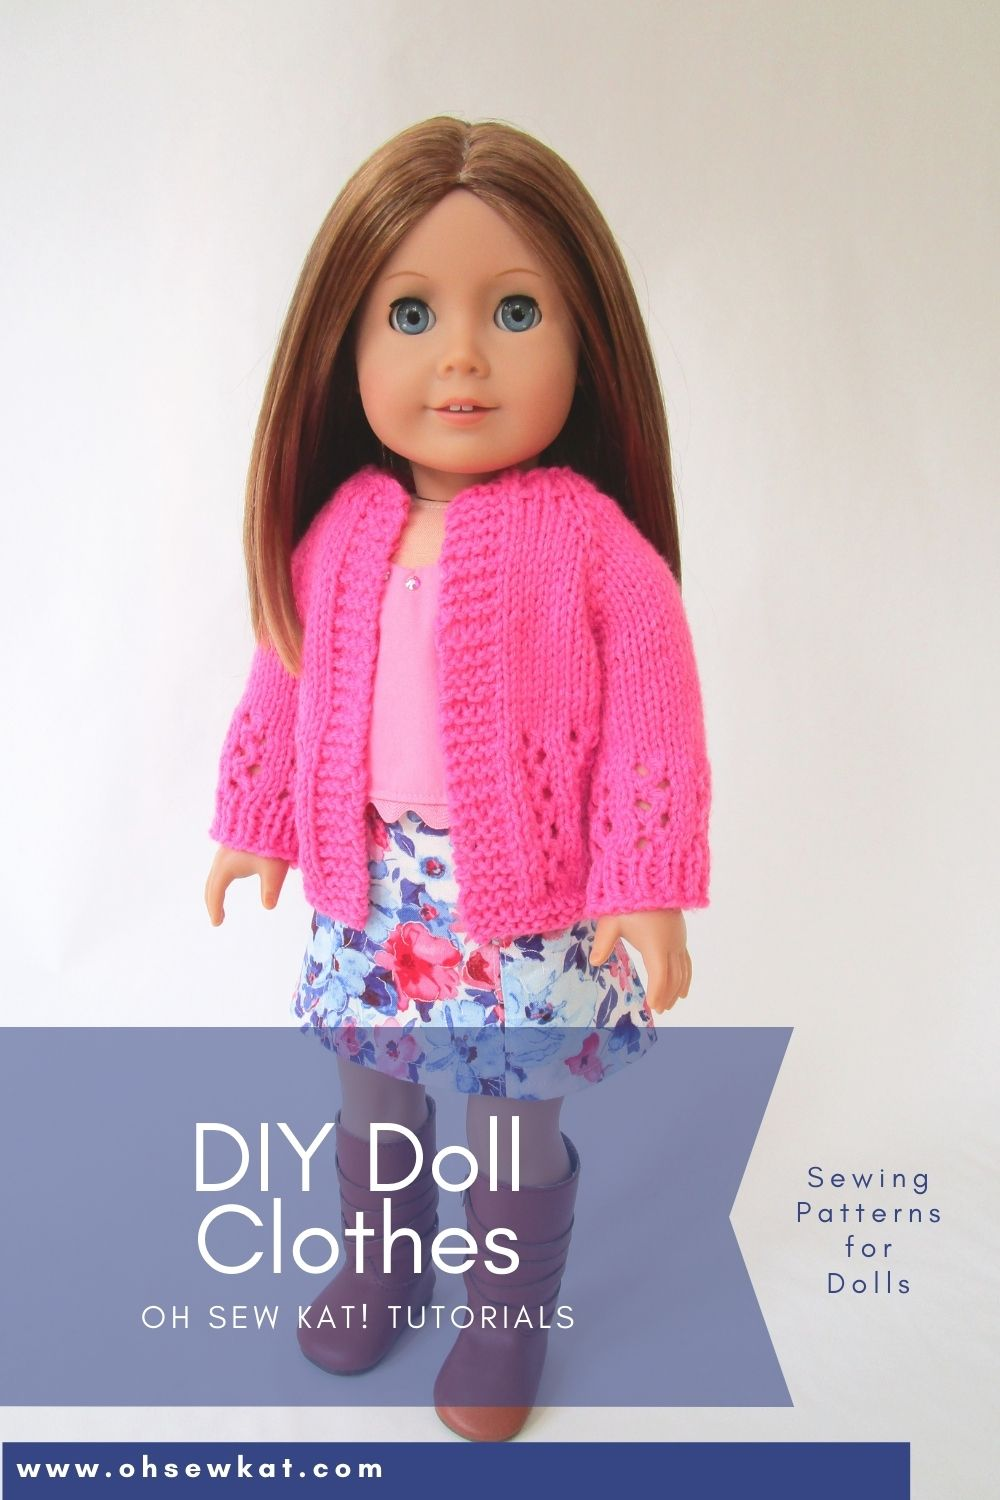 Create your own fashion forward wardrobe for your 18 inch doll with easy PDF sewing patterns and simple knitted sweaters for dolls.